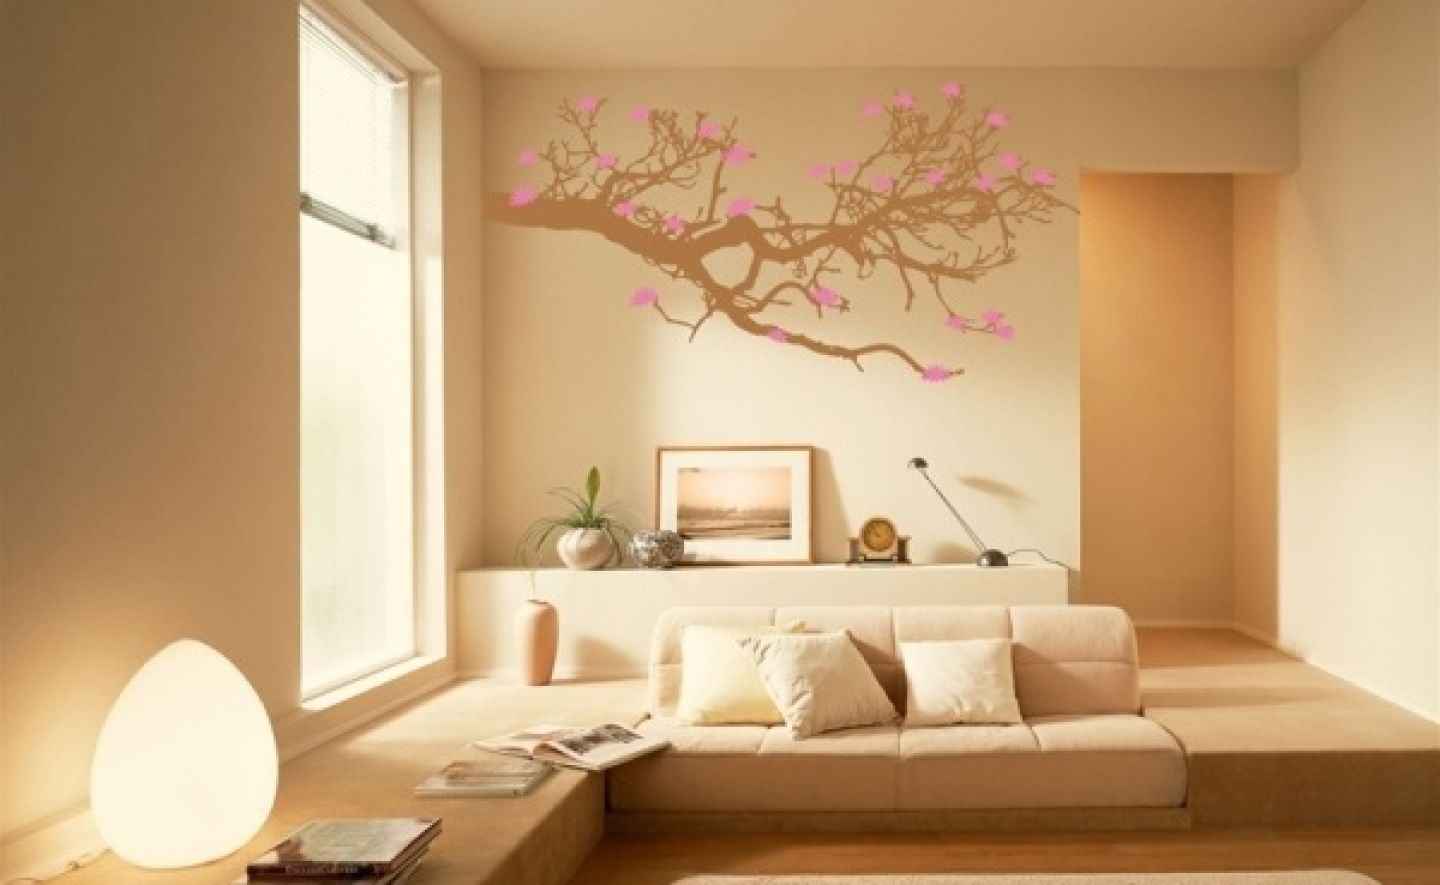 living room paint ideas for living room with natural wallpaper paint ideas for living room canvas painting ideas for living room painting ideas for - Interior Design Paint Ideas